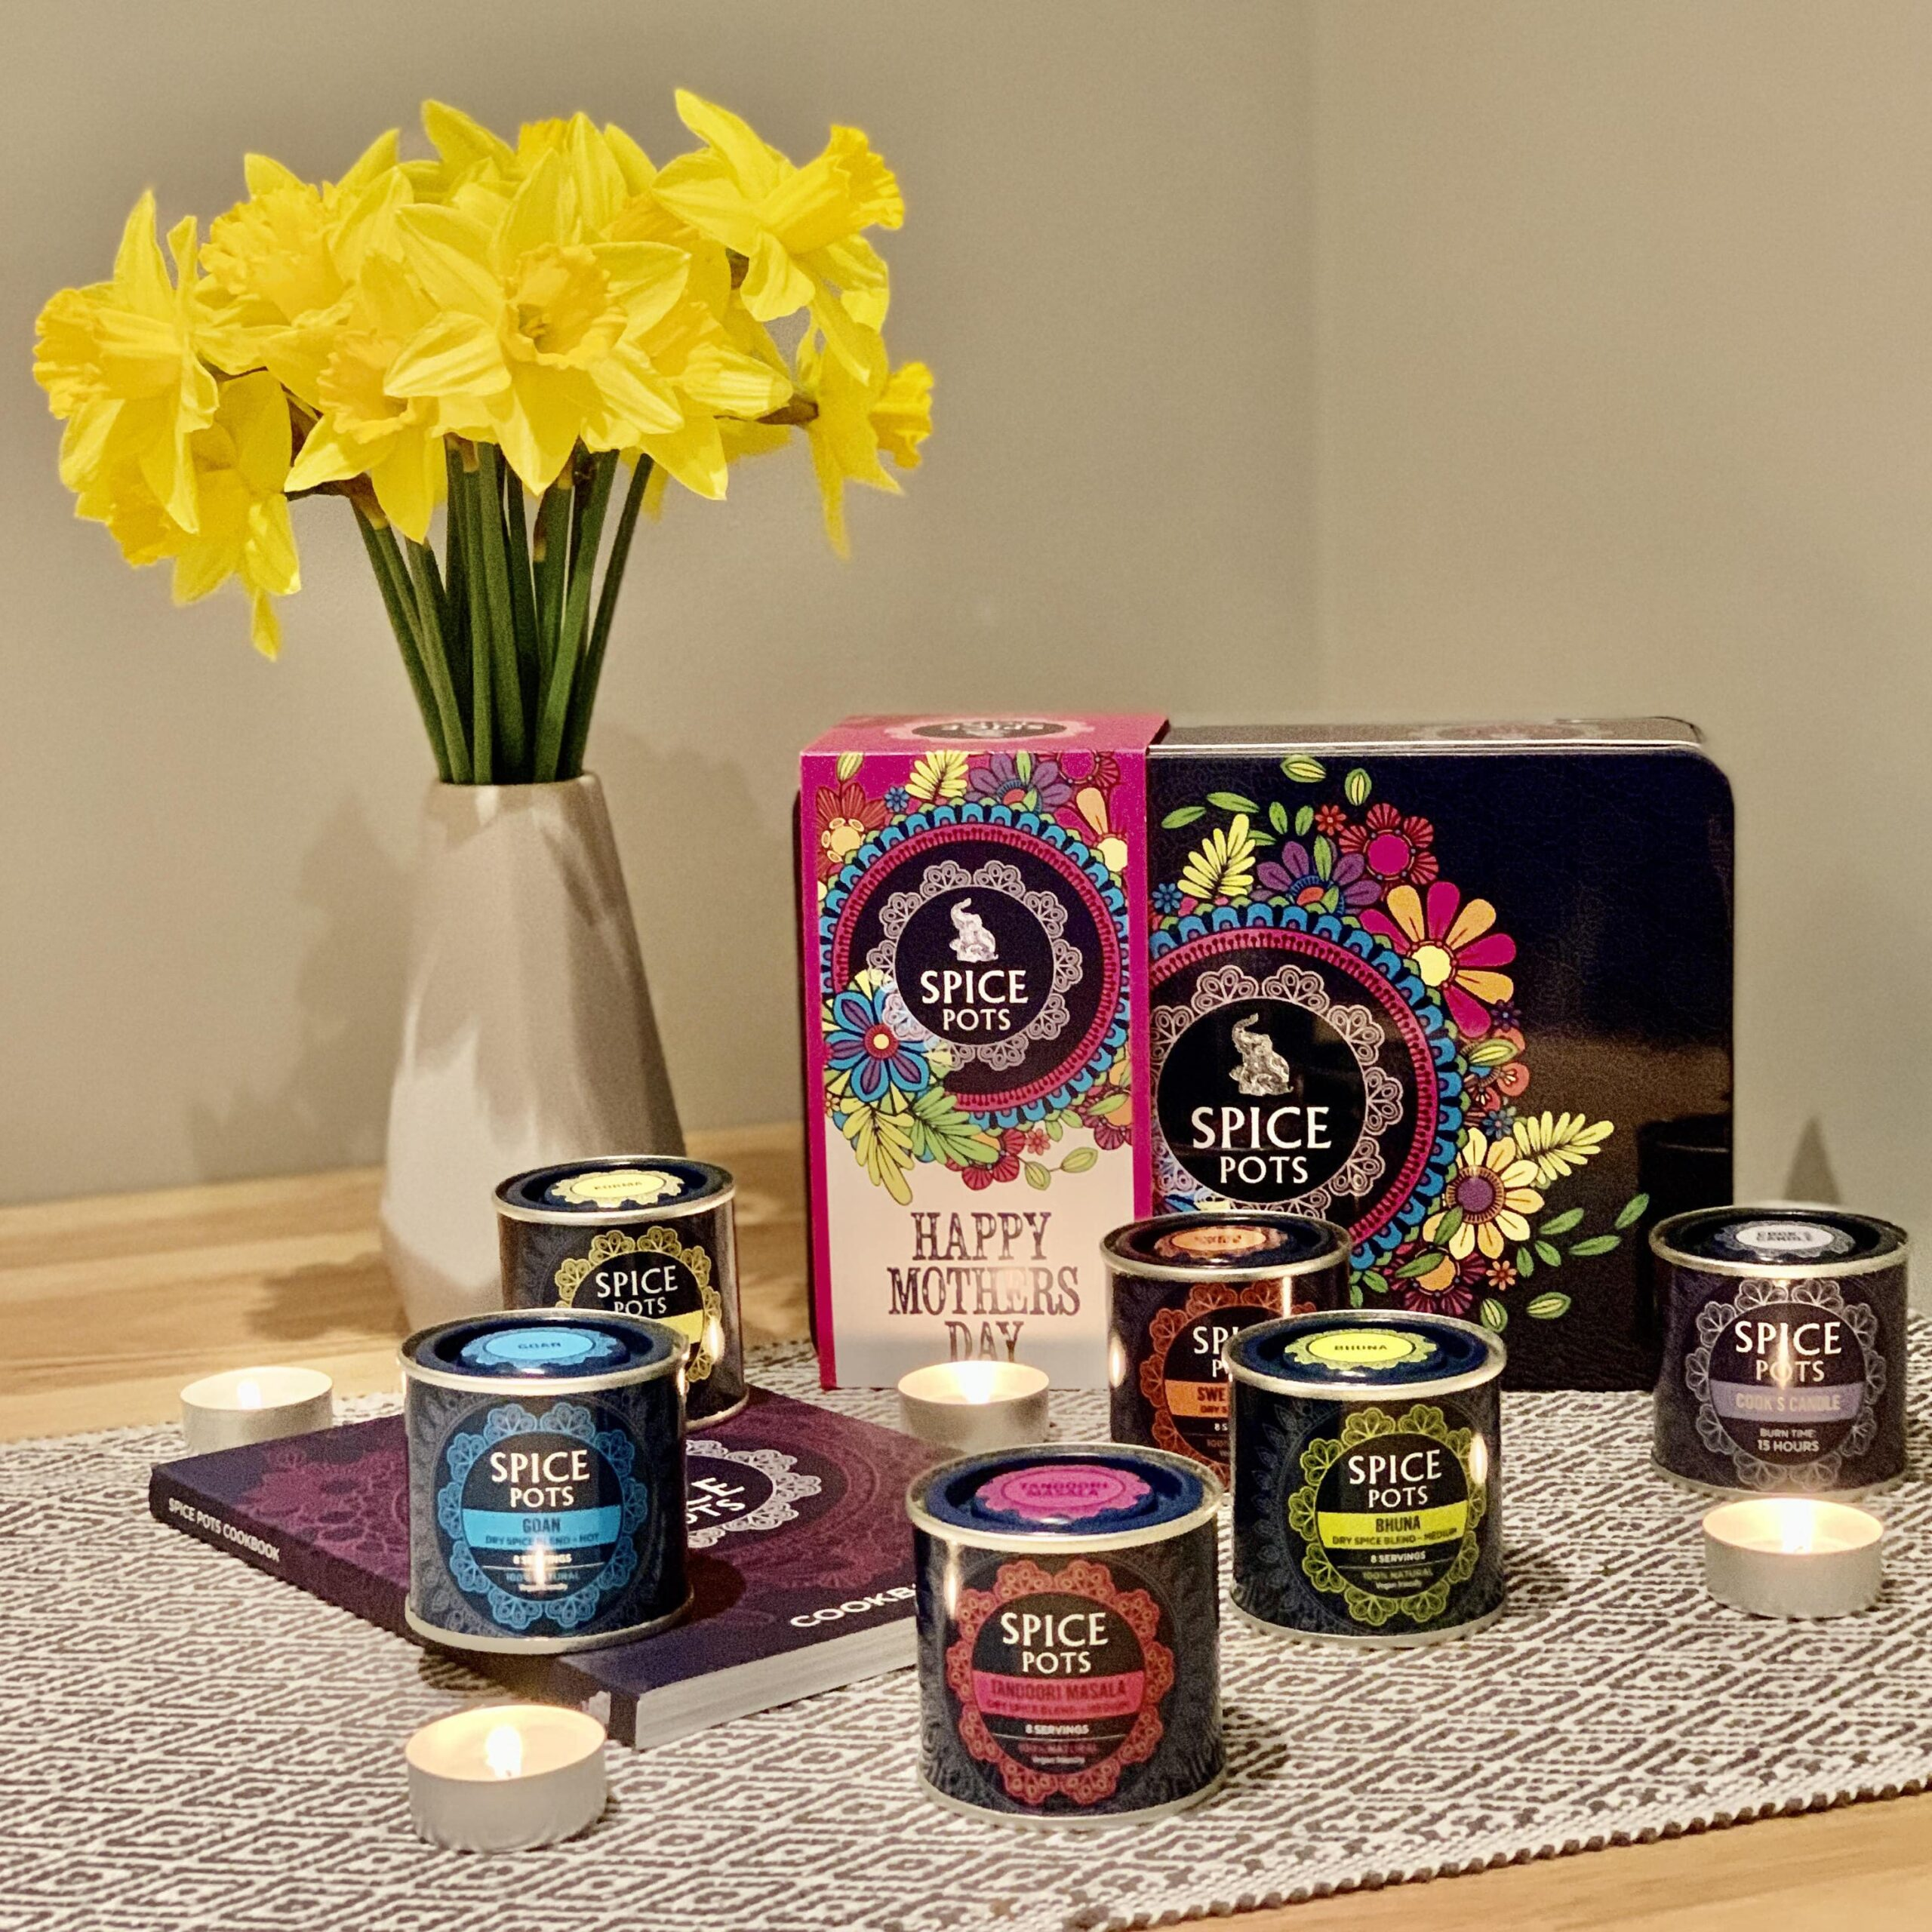 Spice pots - Mothers day